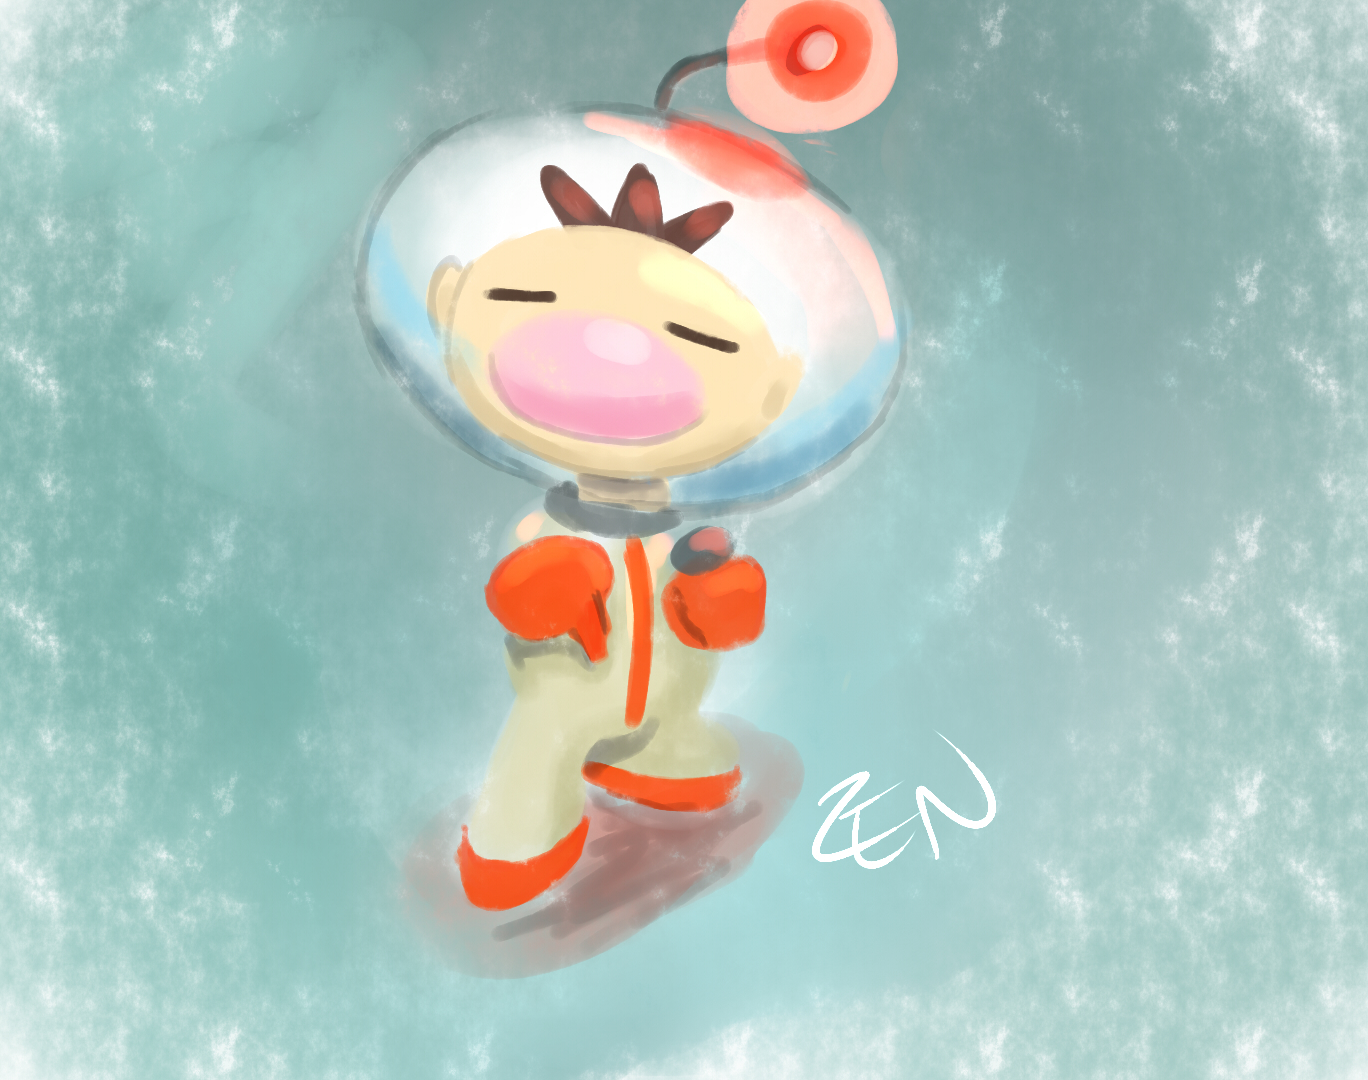 Ollie olimar dropping the mic